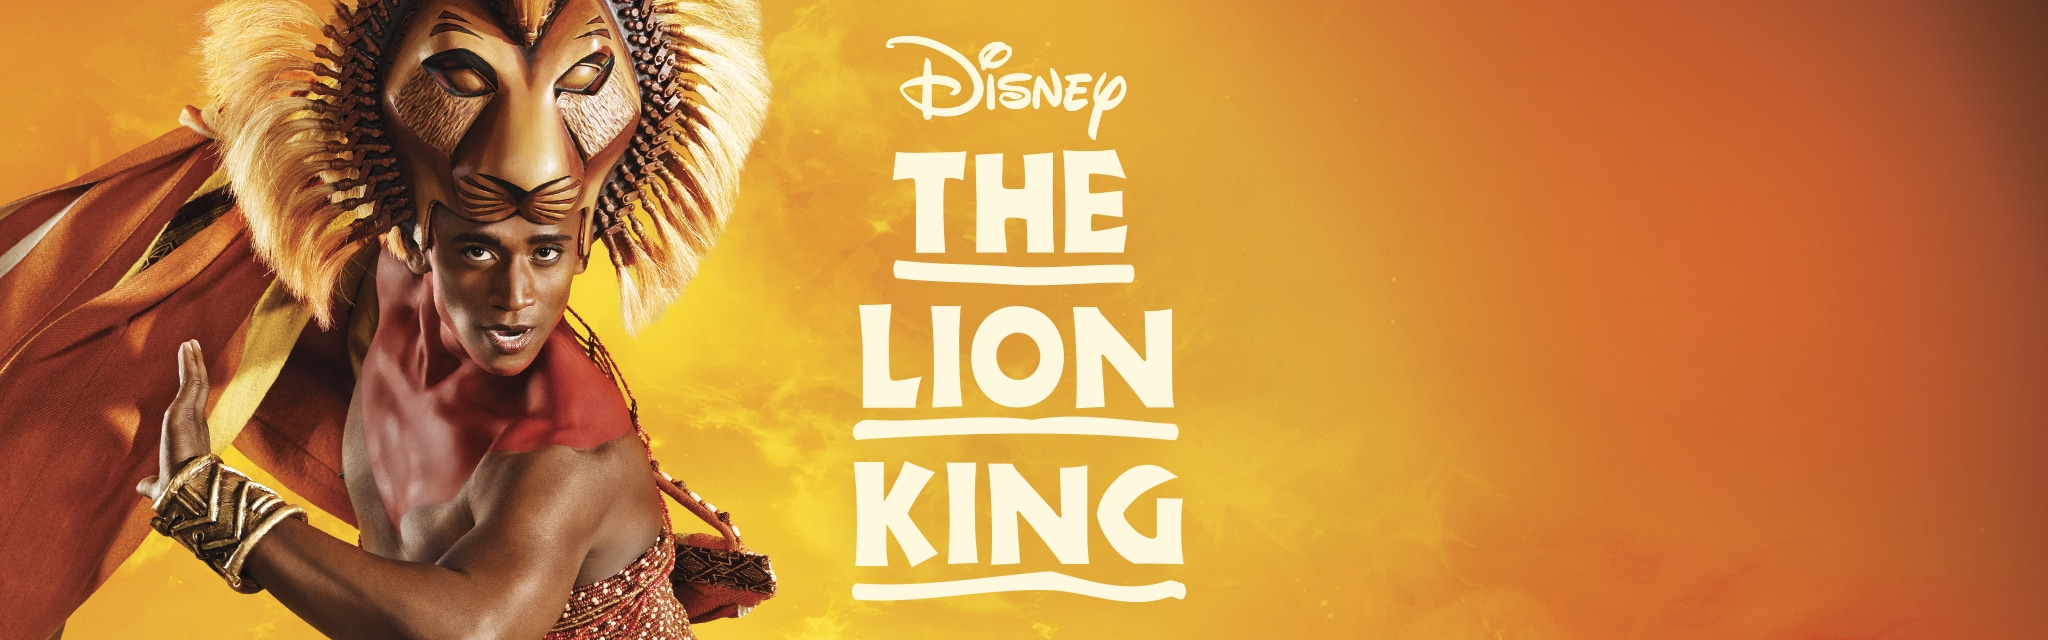 FW Hero - The Lion King (Homepage)